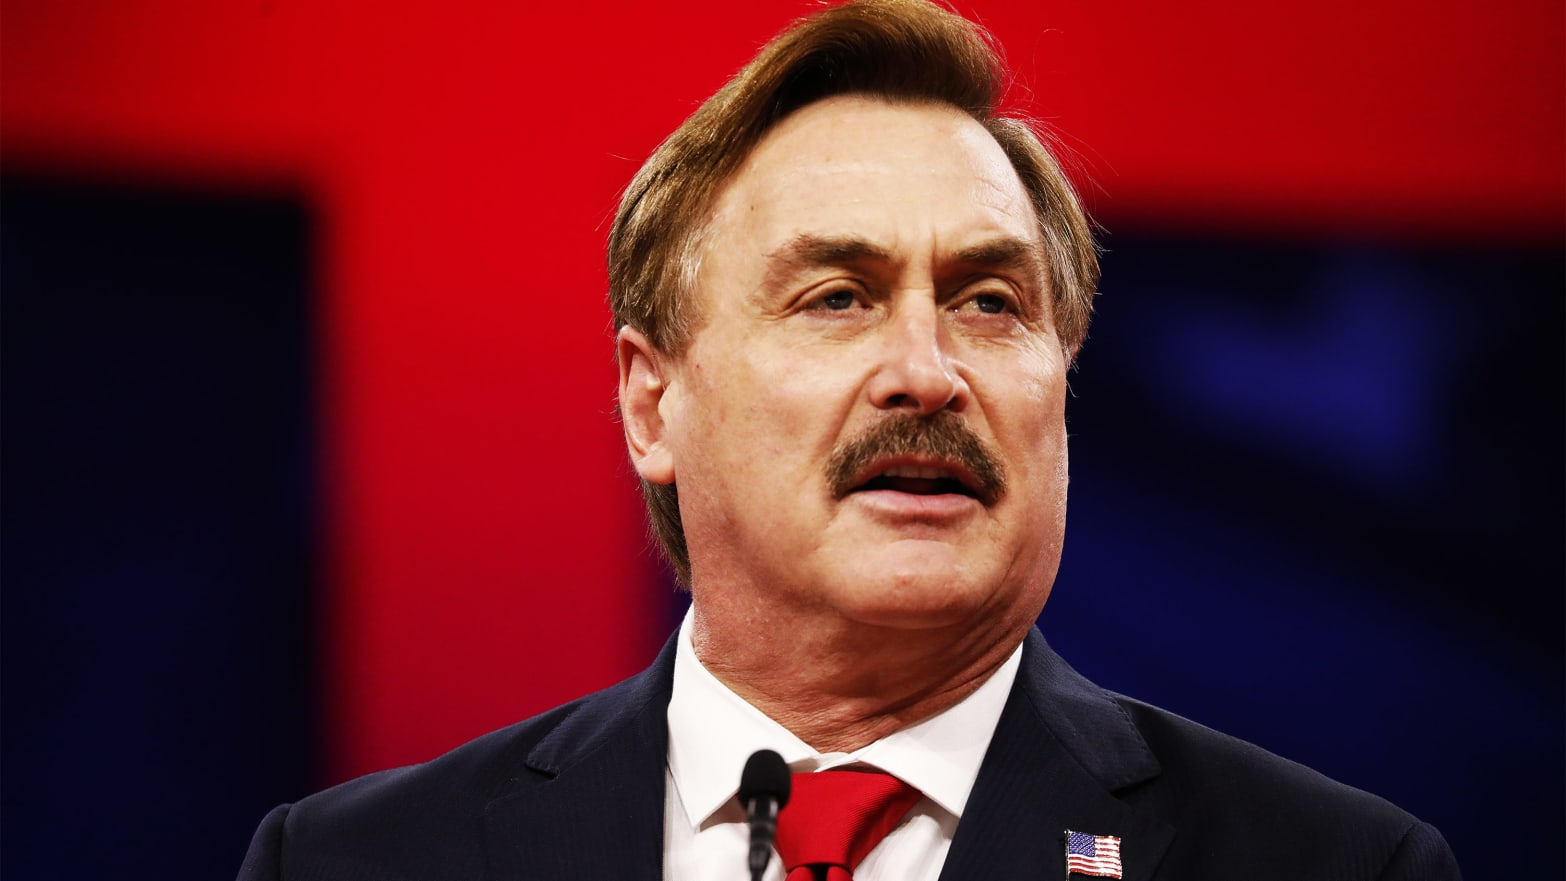 Mypillow Ceo Mike Lindell Is Throwing Down Big Money To Fuel Pro Trump Election Challenges